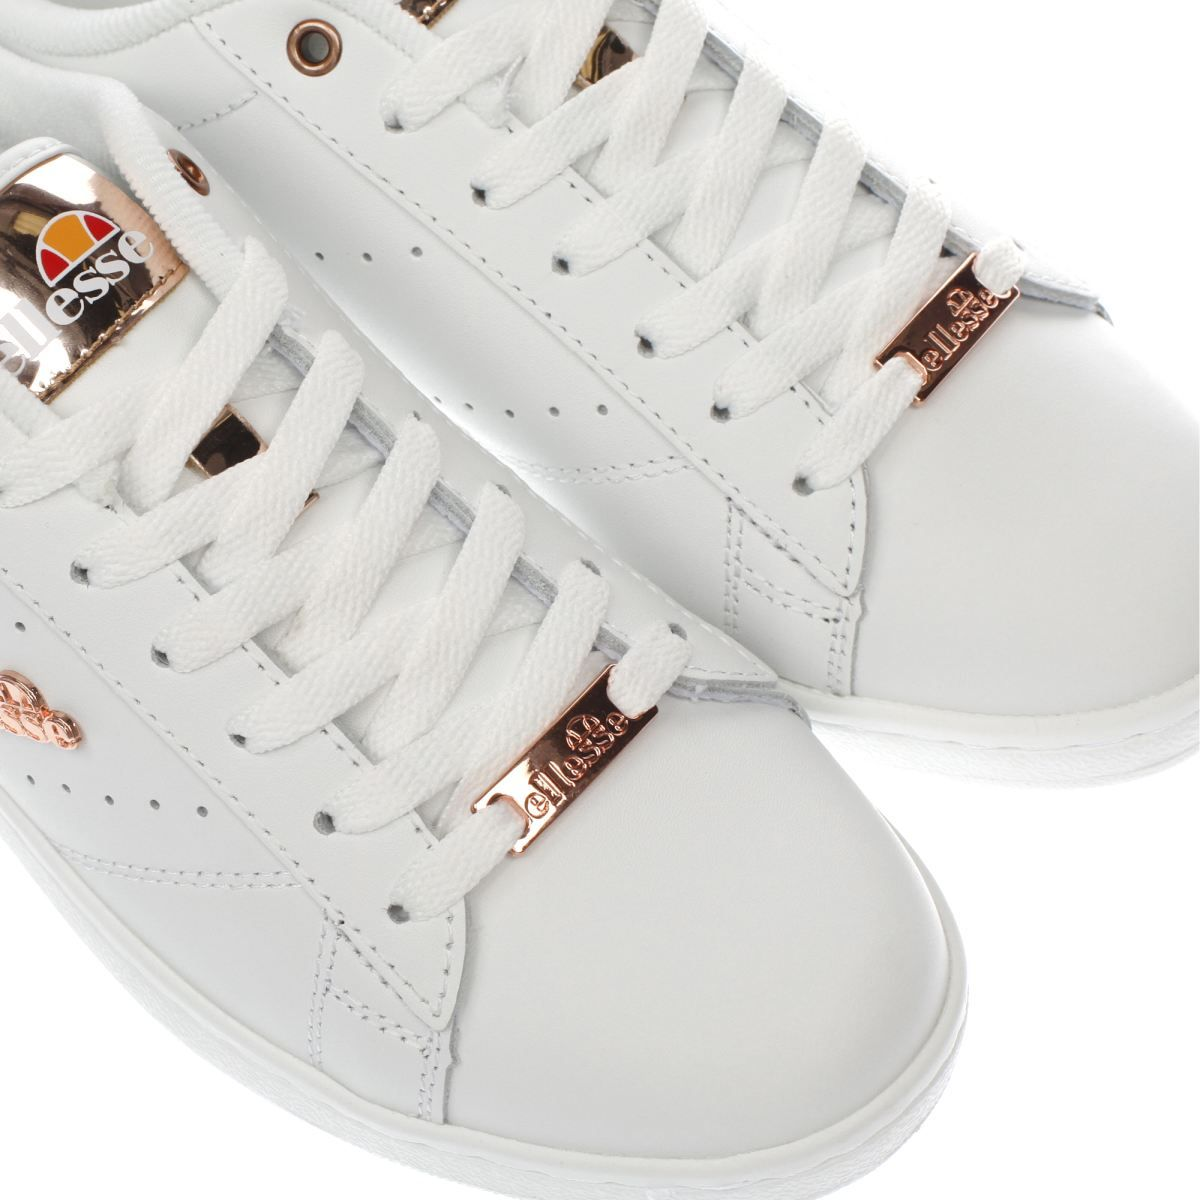 reputable site 32f08 a76a4 womens ellesse white   rose gold anzia trainers Sports Shoes, Jd Sports,  Ellesse Shoes